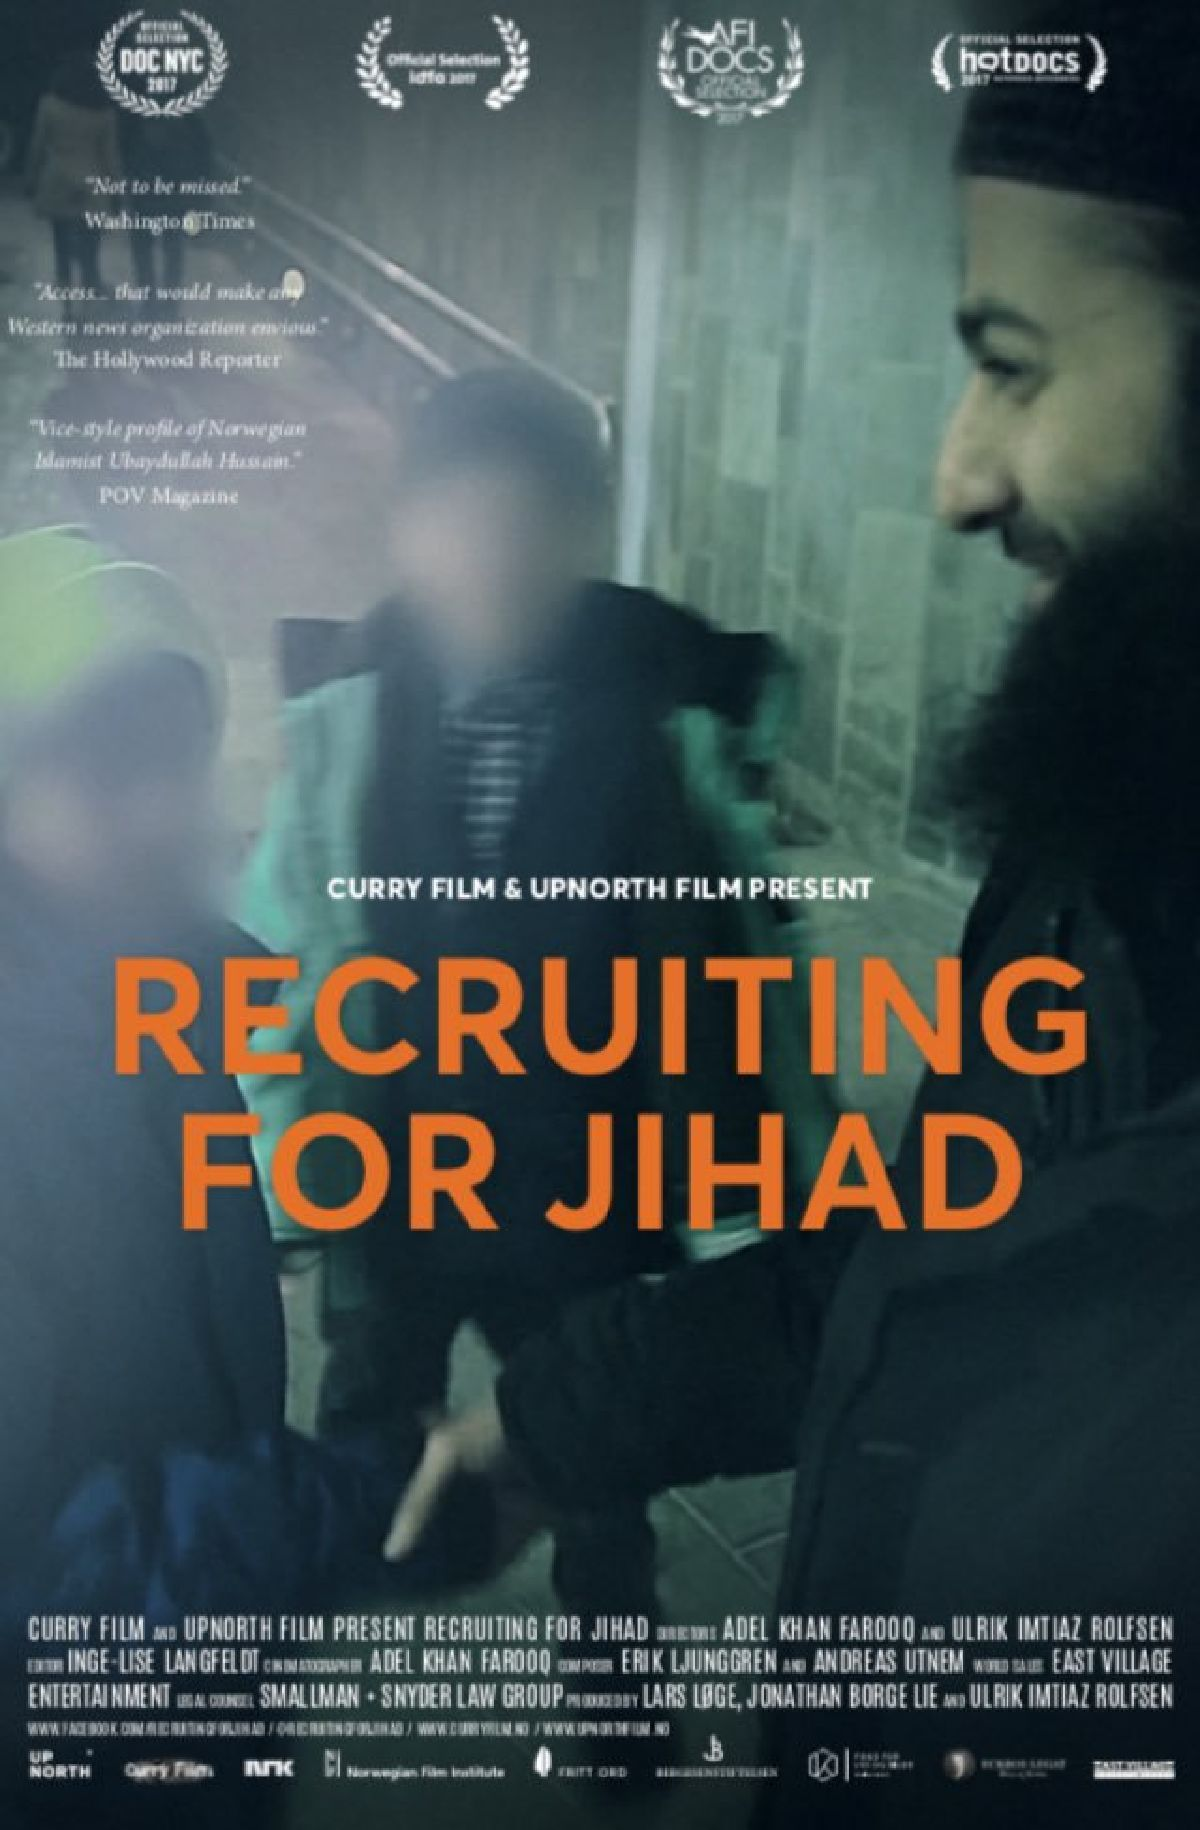 'Recruiting For Jihad' movie poster